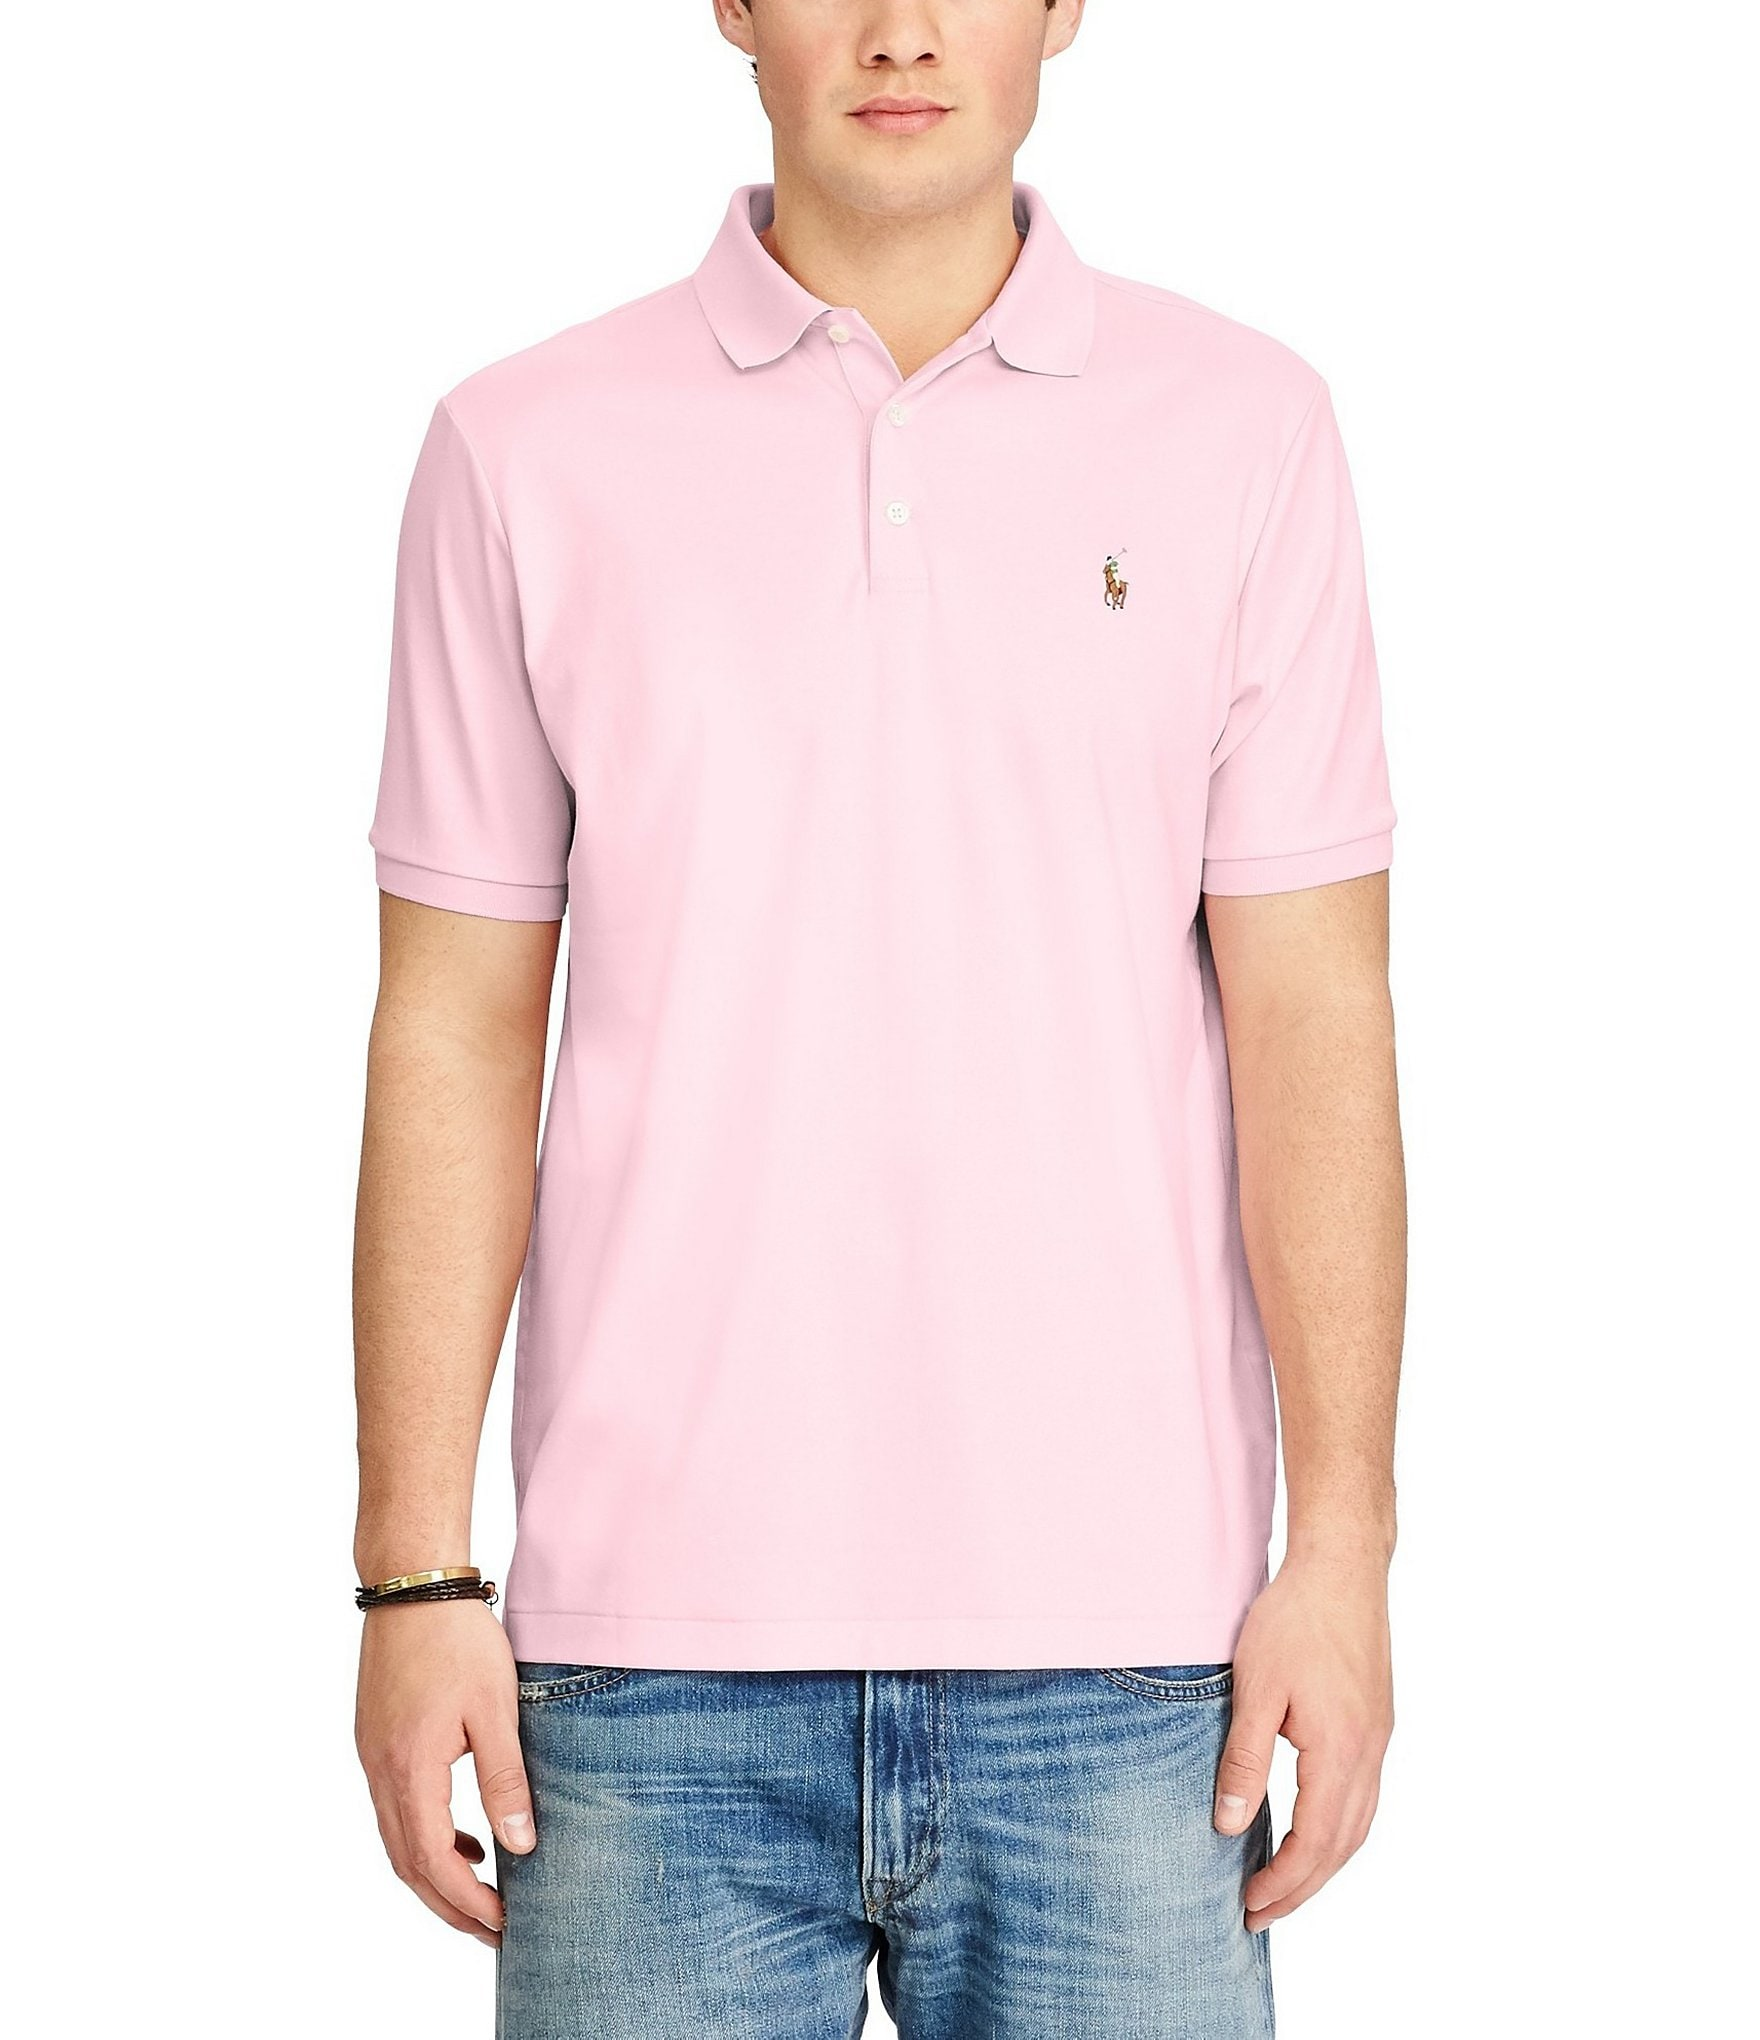 Polo Ralph Lauren Classic Fit Soft Touch Short Sleeve Polo